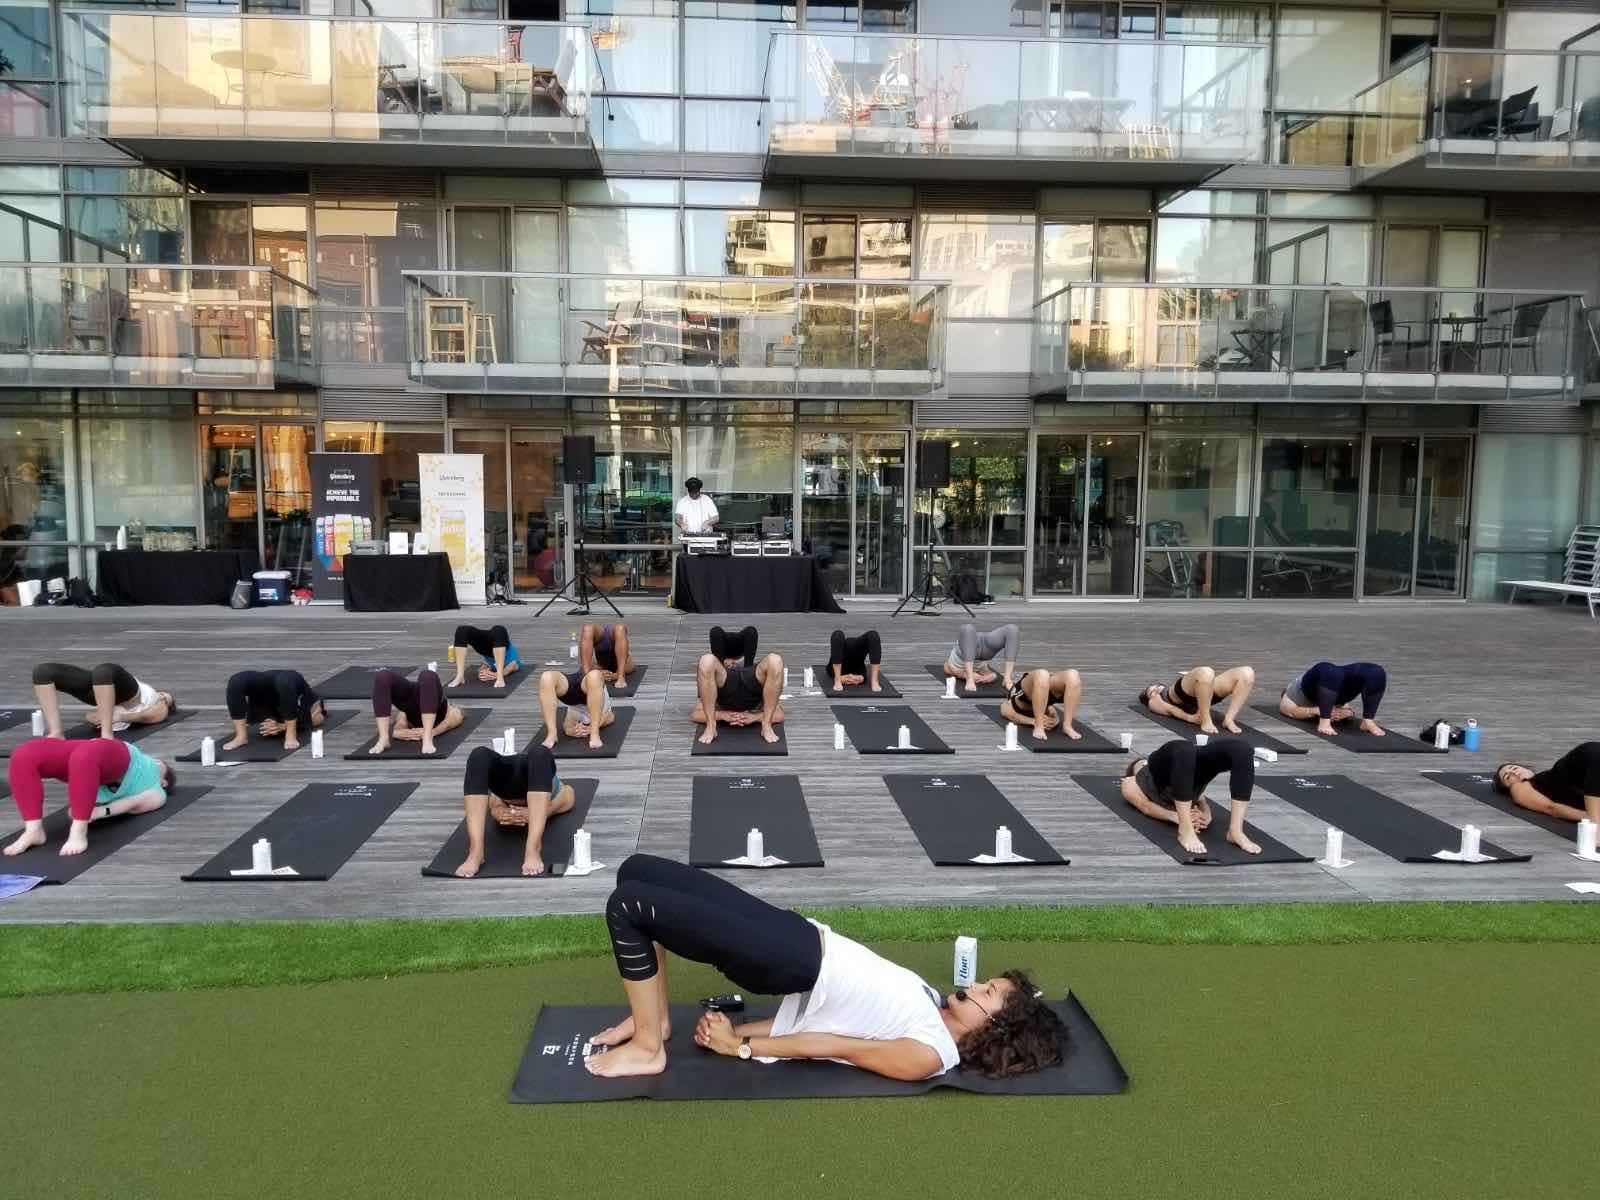 Thompson Toronto Rooftop Yoga with instructor in front